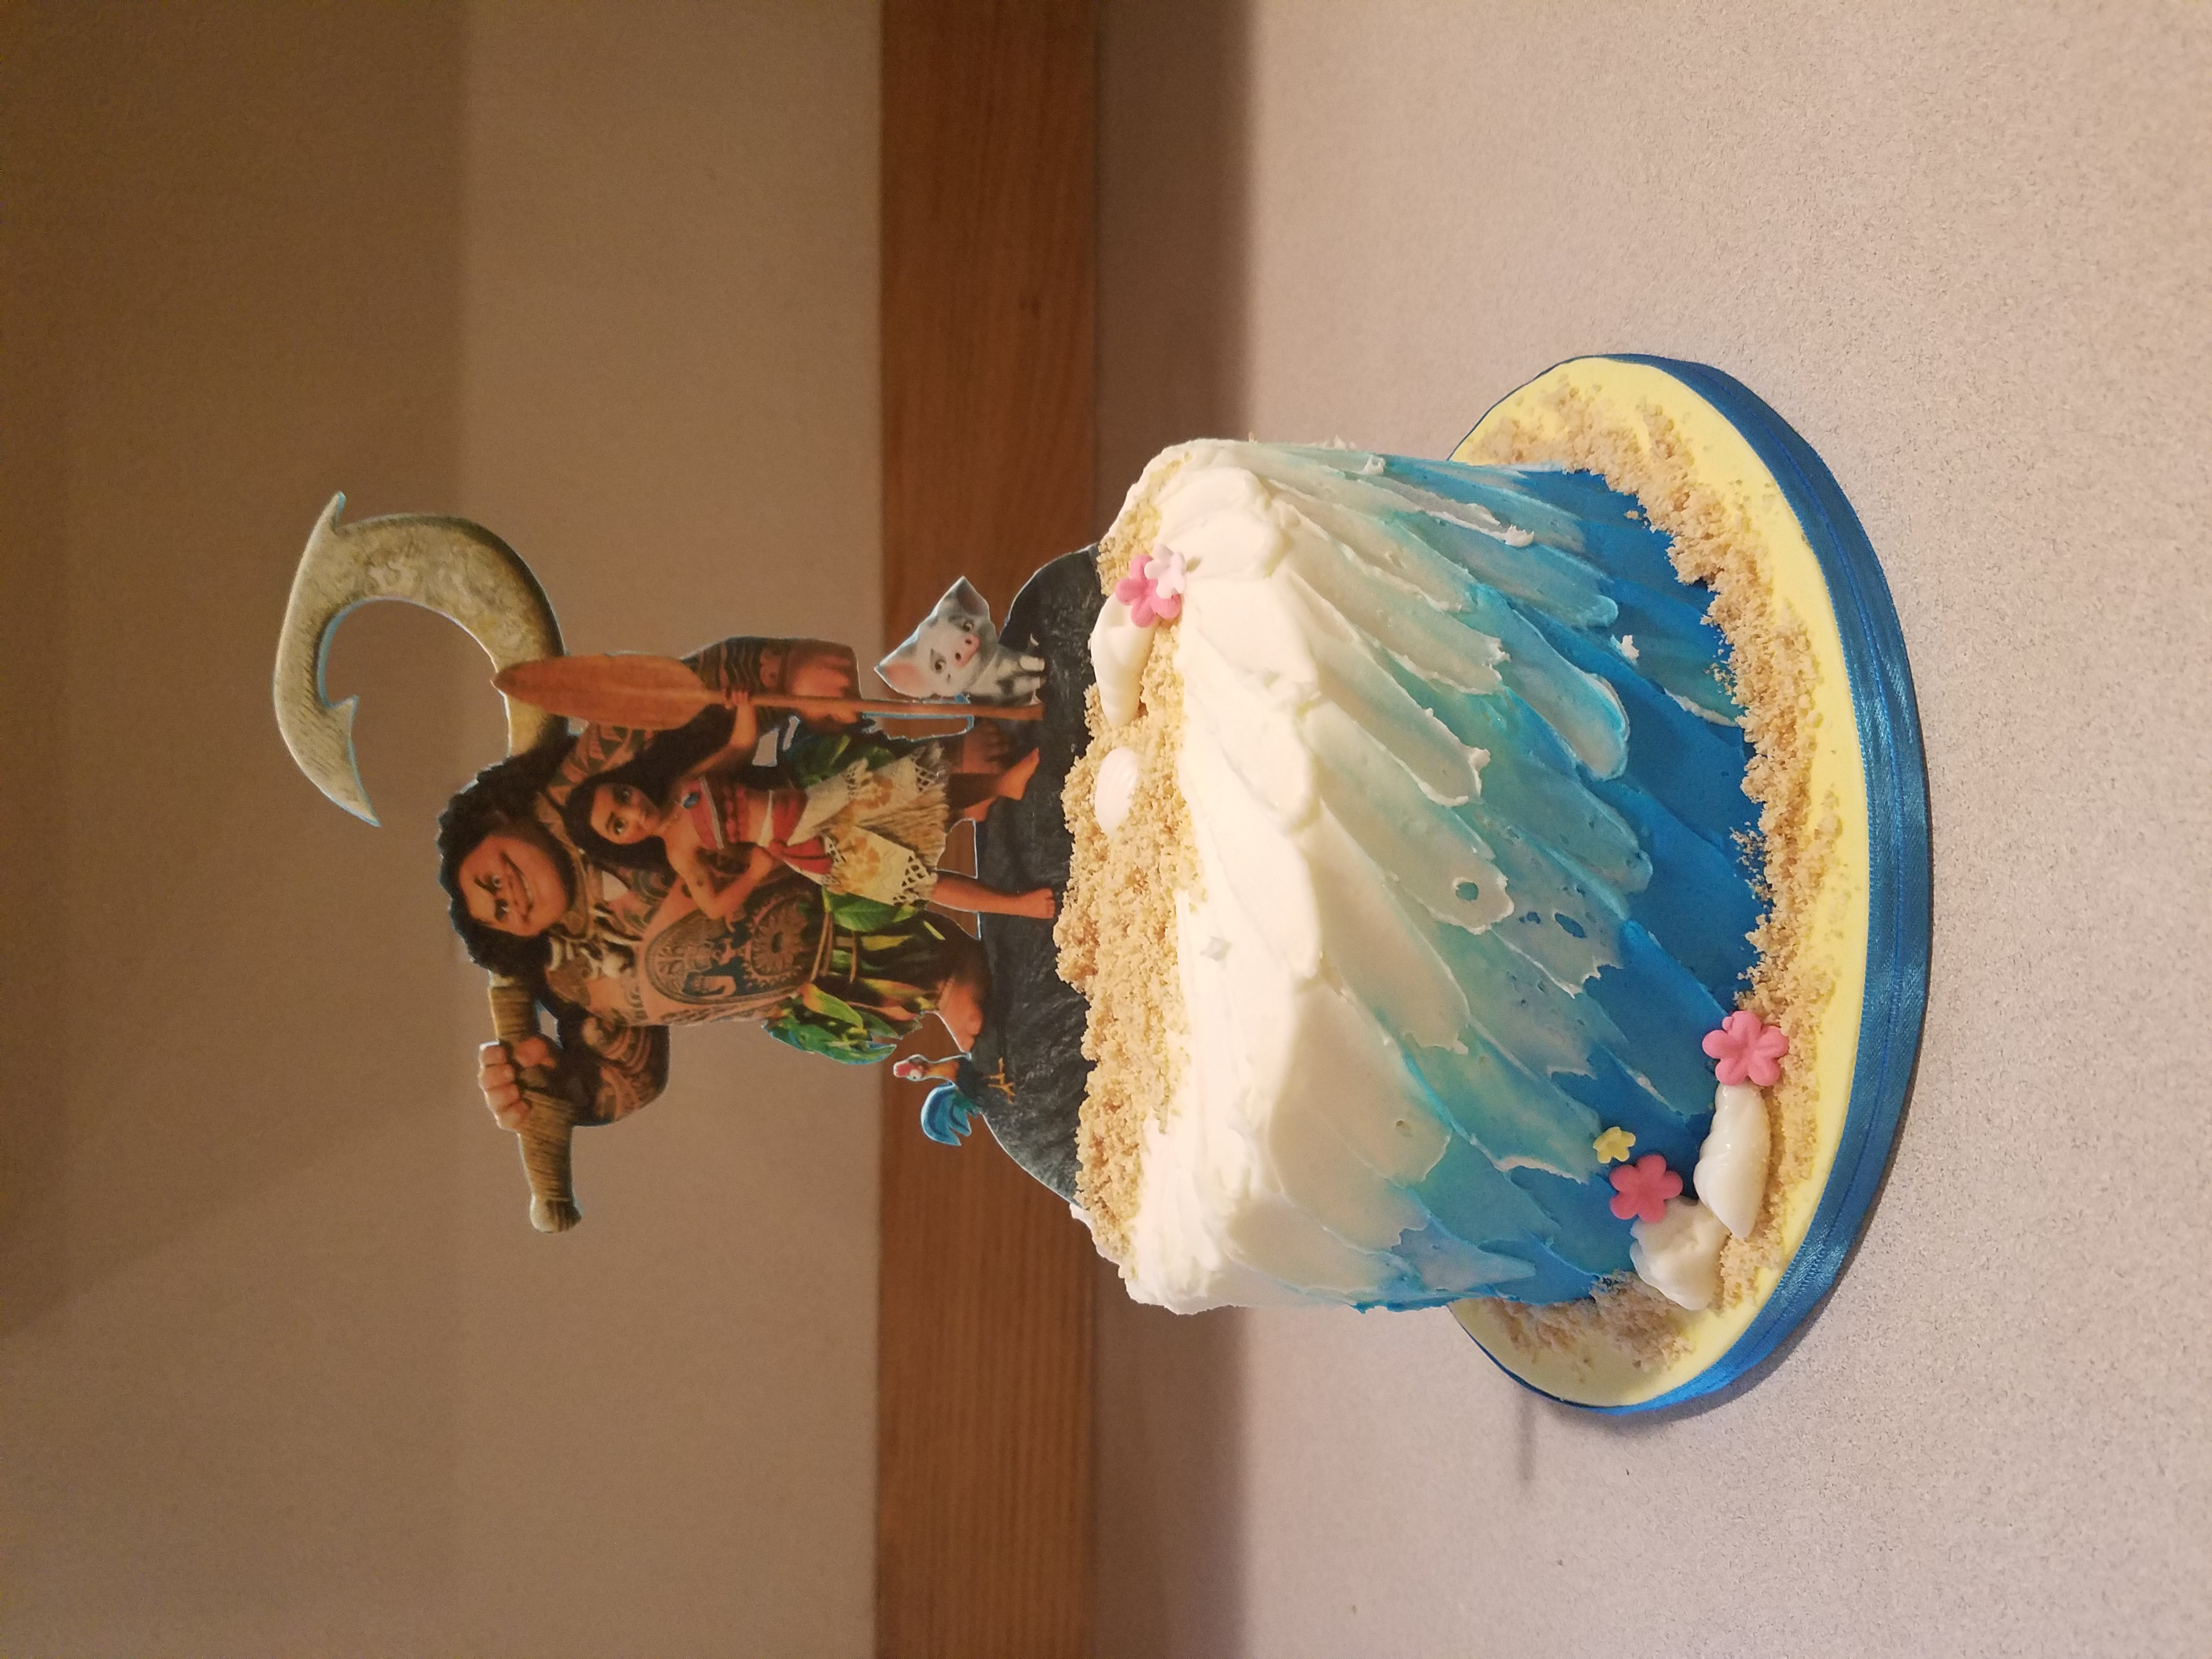 Moana inspried smash cake